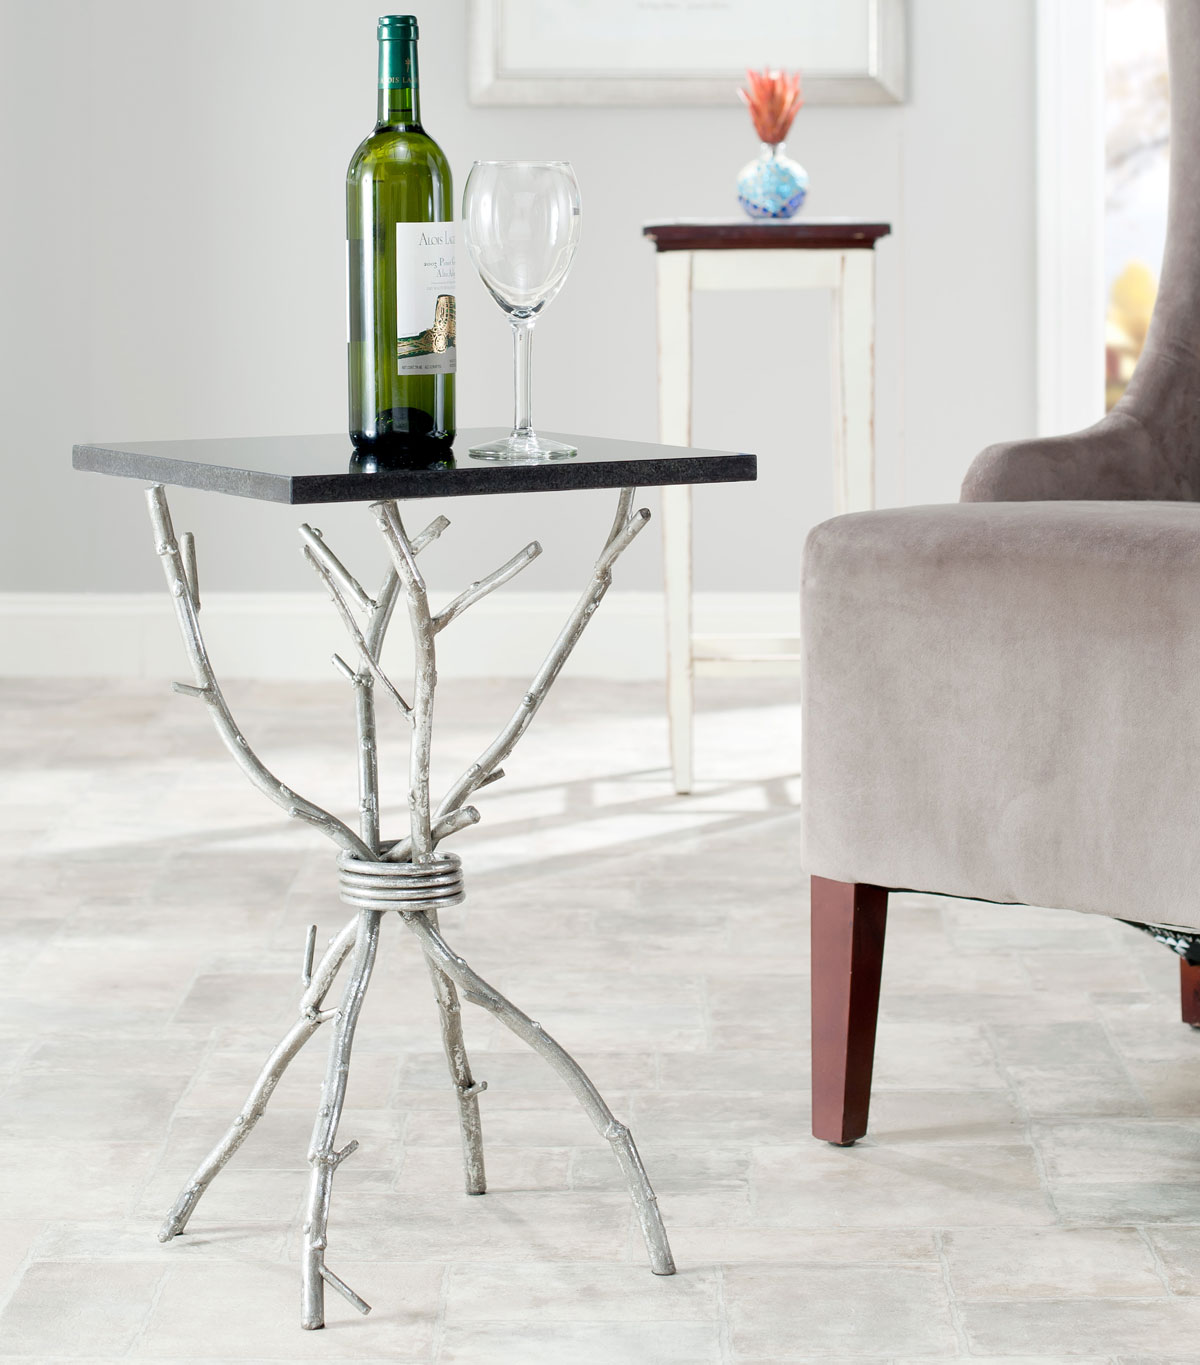 accent tables furniture safavieh room silver table share this product bedroom side grey recliner designer bedside lamps outdoor chair round lamp wyatt white end wooden mats tilt